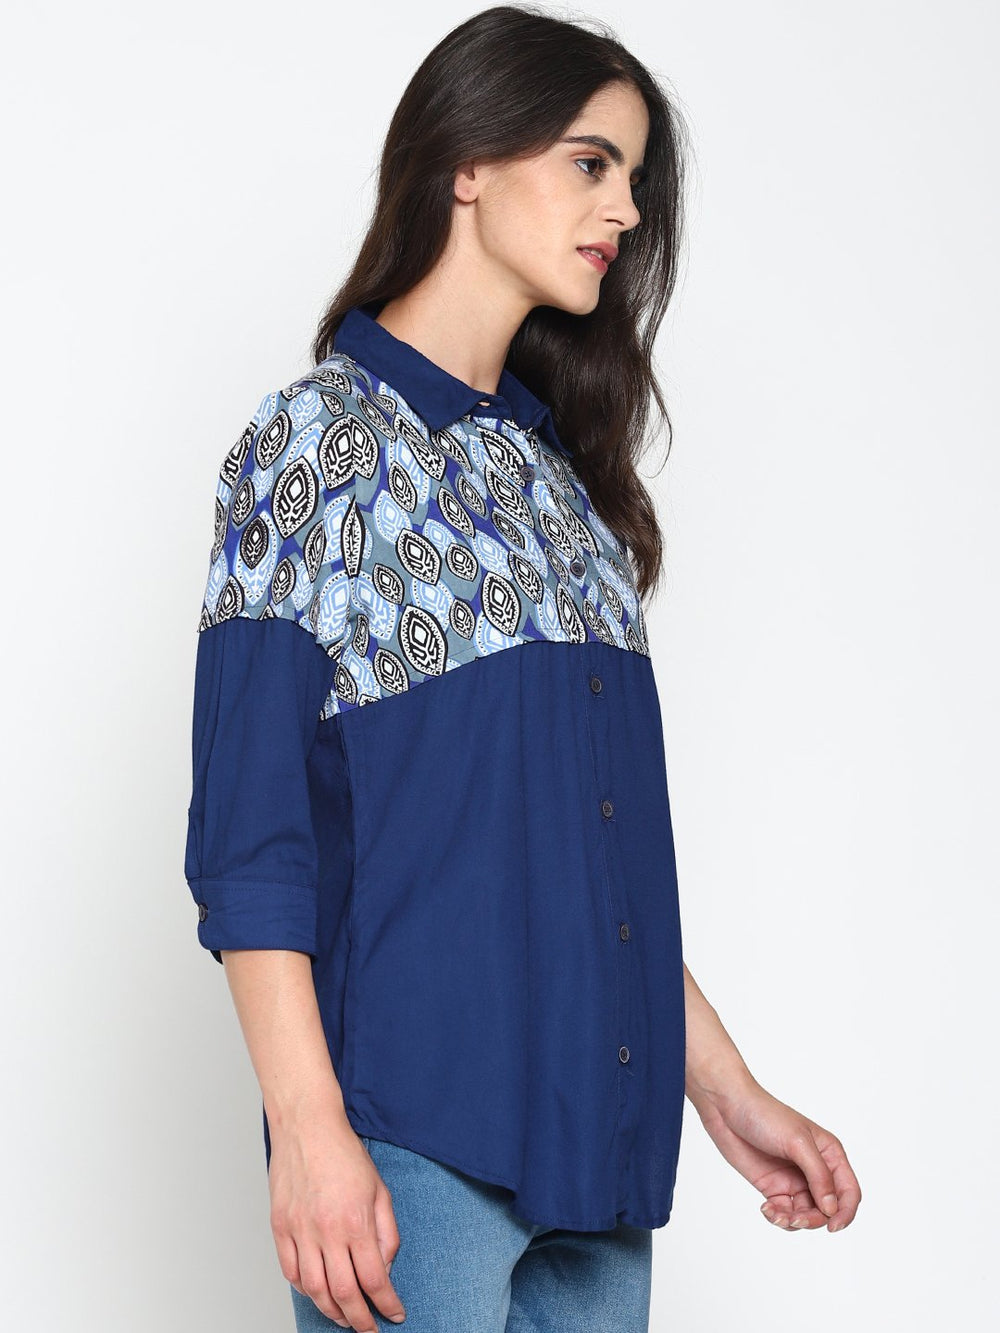 Blue Layered Shirt With Tribal Printed Yoke | Untung